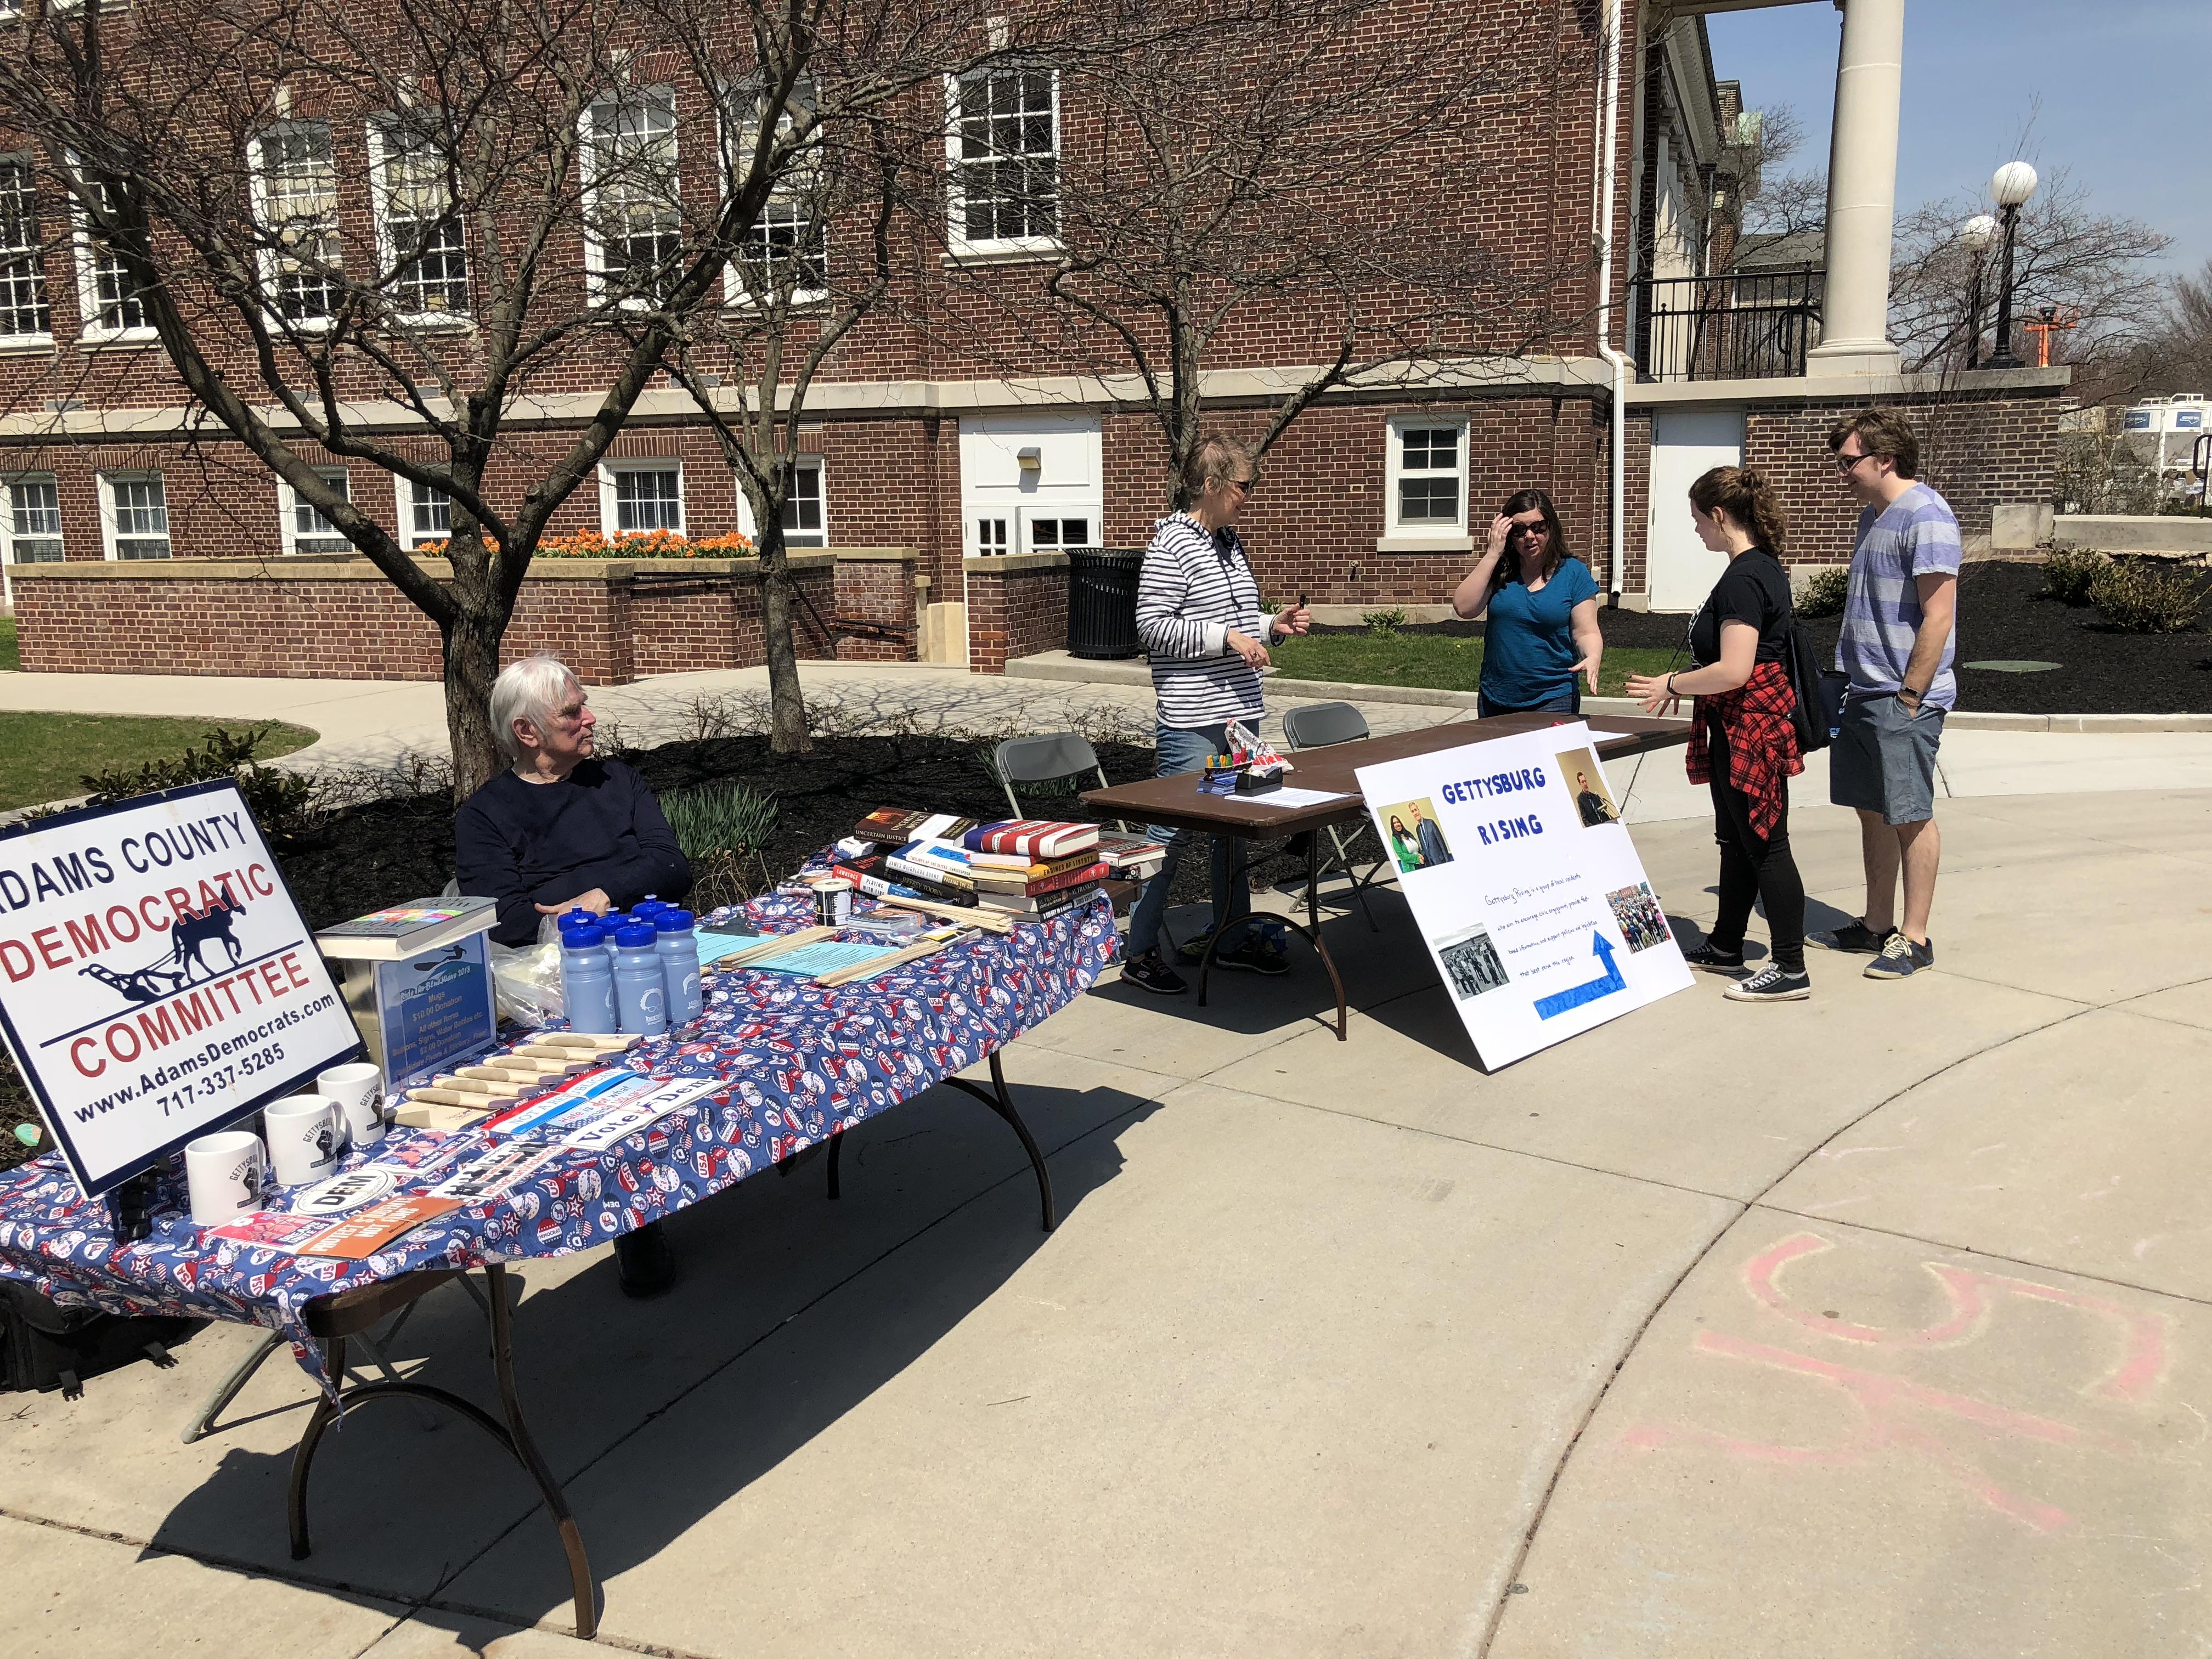 The Adams County Democratic Committee and other local and campus organizations were tabling outside prior to and during the event (Photo Jamie Welch/The Gettysburgian)